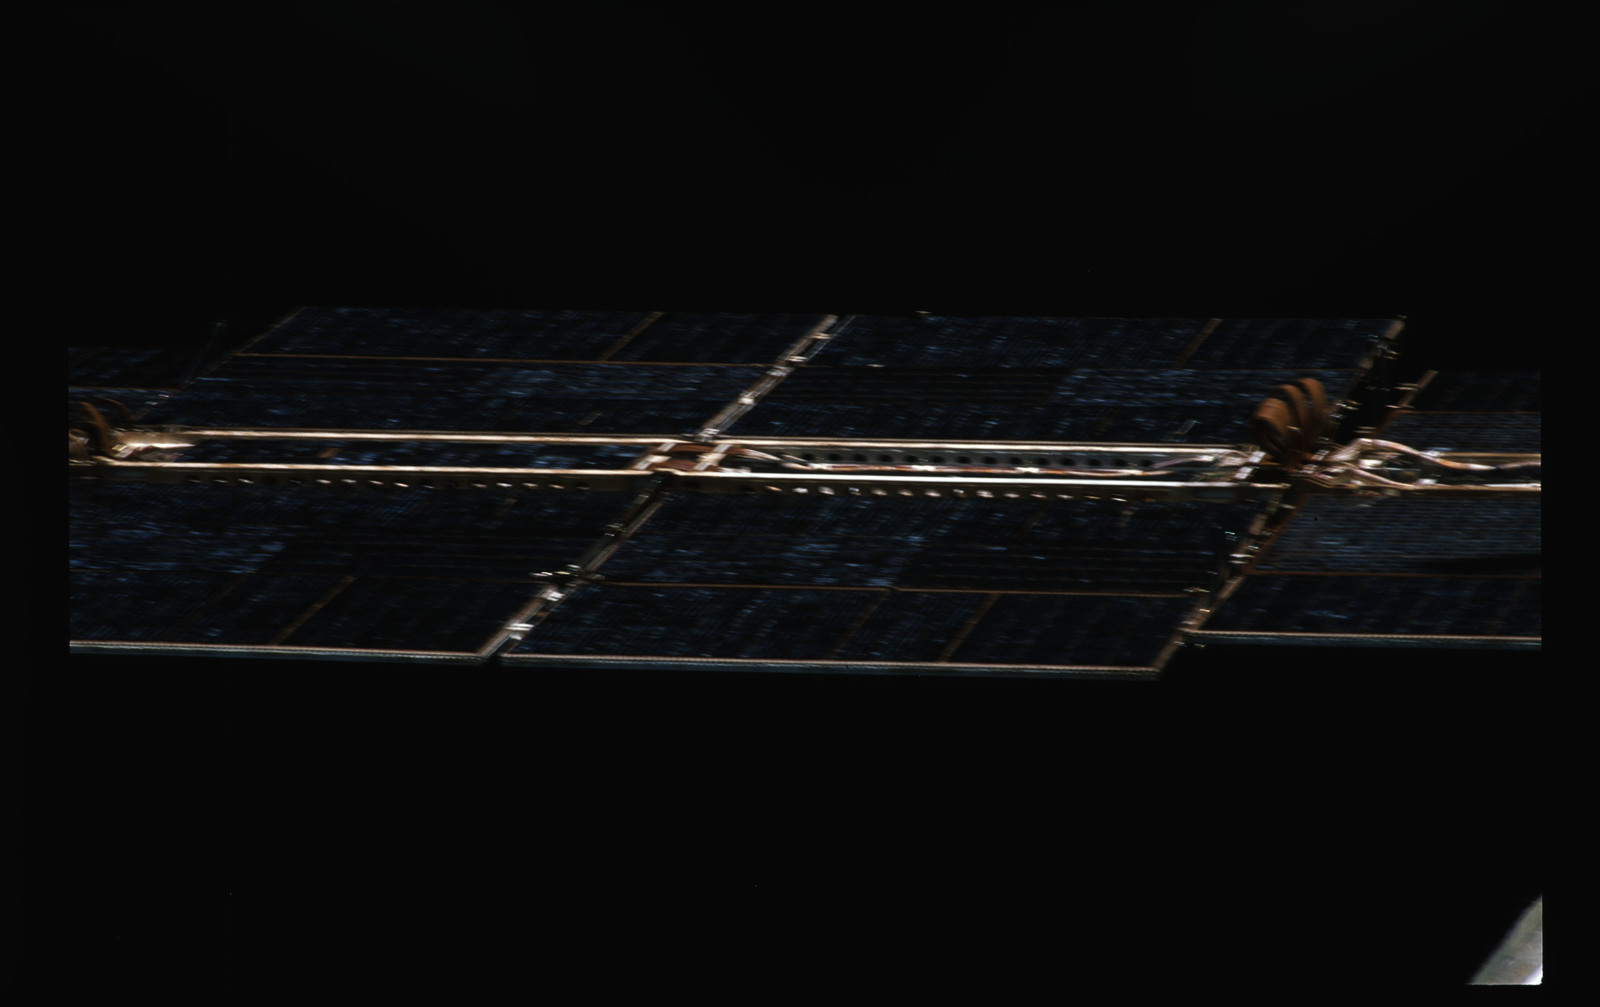 STS071-389-002 - STS-071 - Solar arrays on the Mir space station